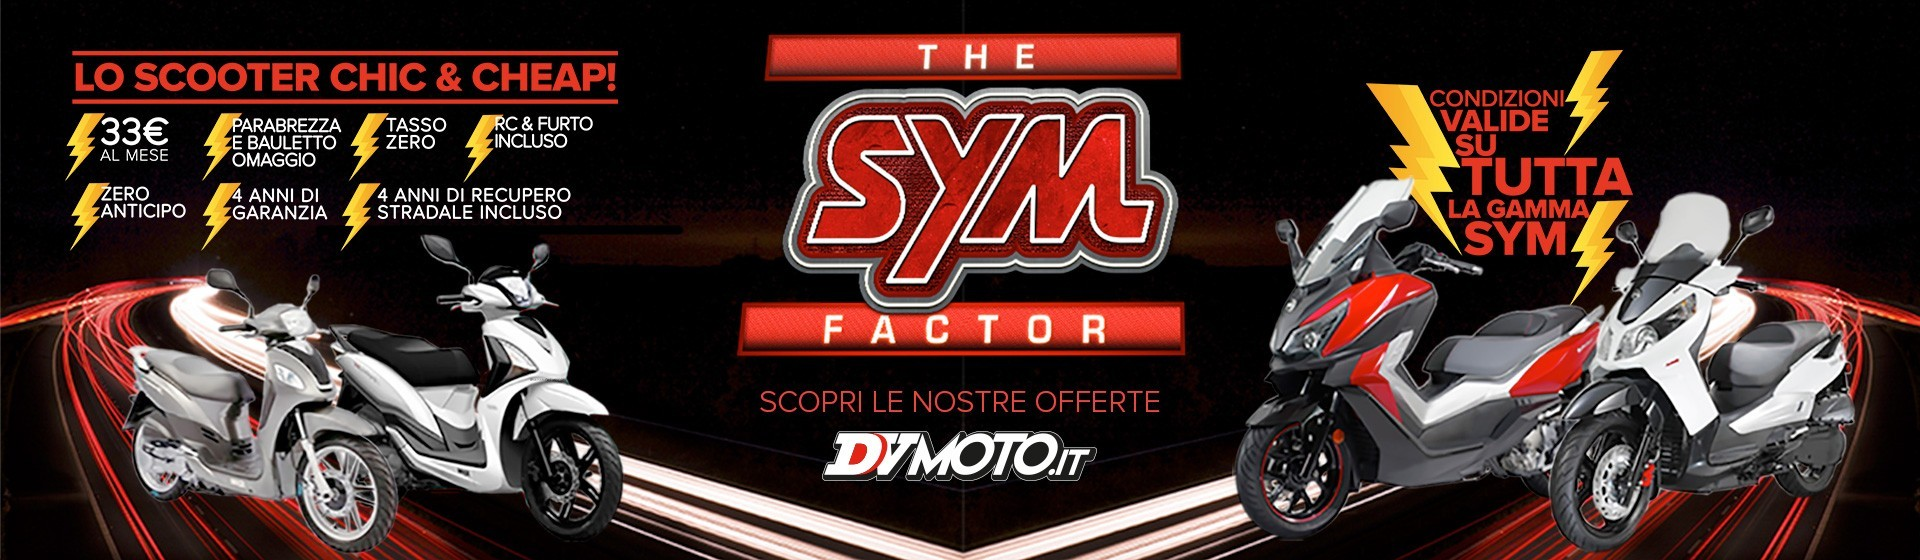 The-Sym-Factor-Slider